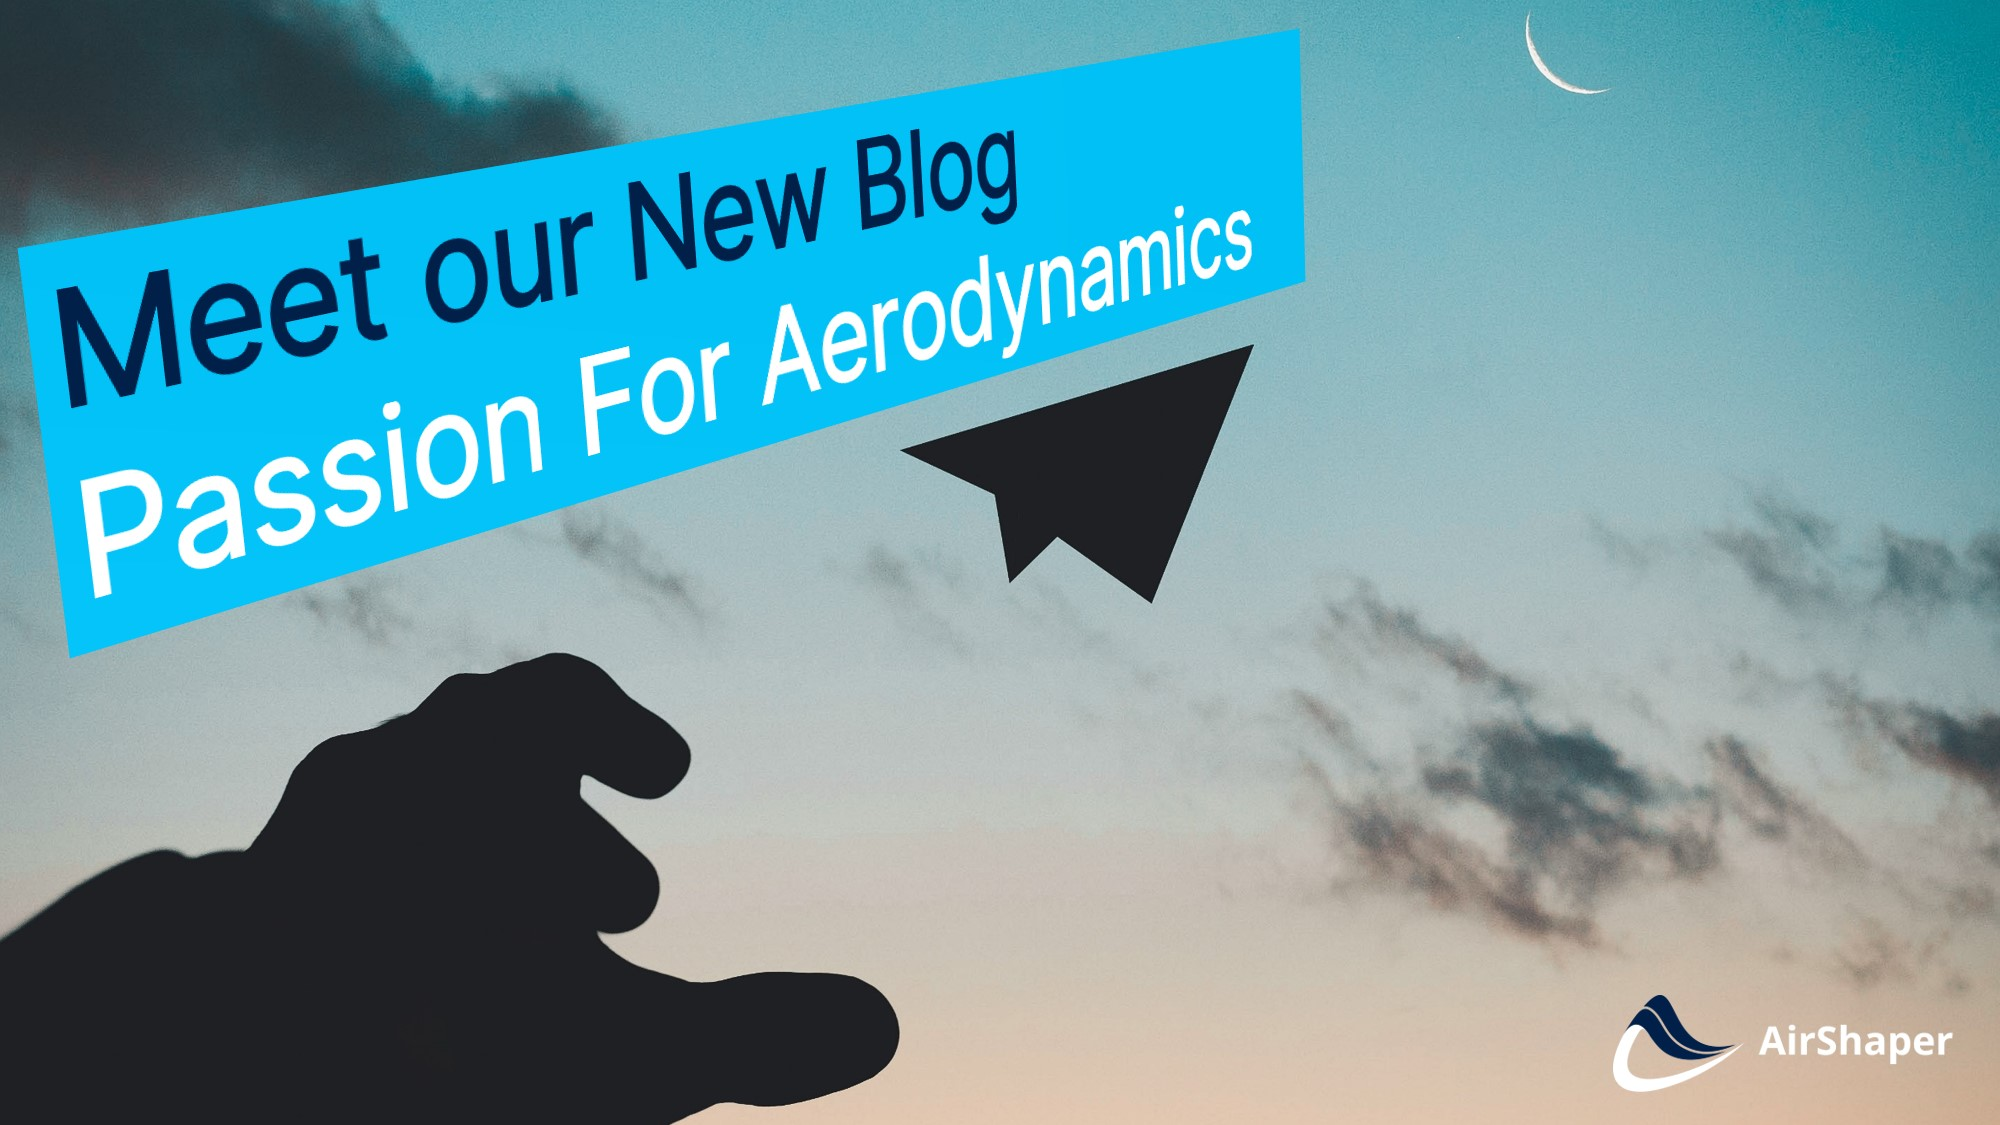 Passion For Aerodynamics - The AirShaper blog about anything related to airflow!